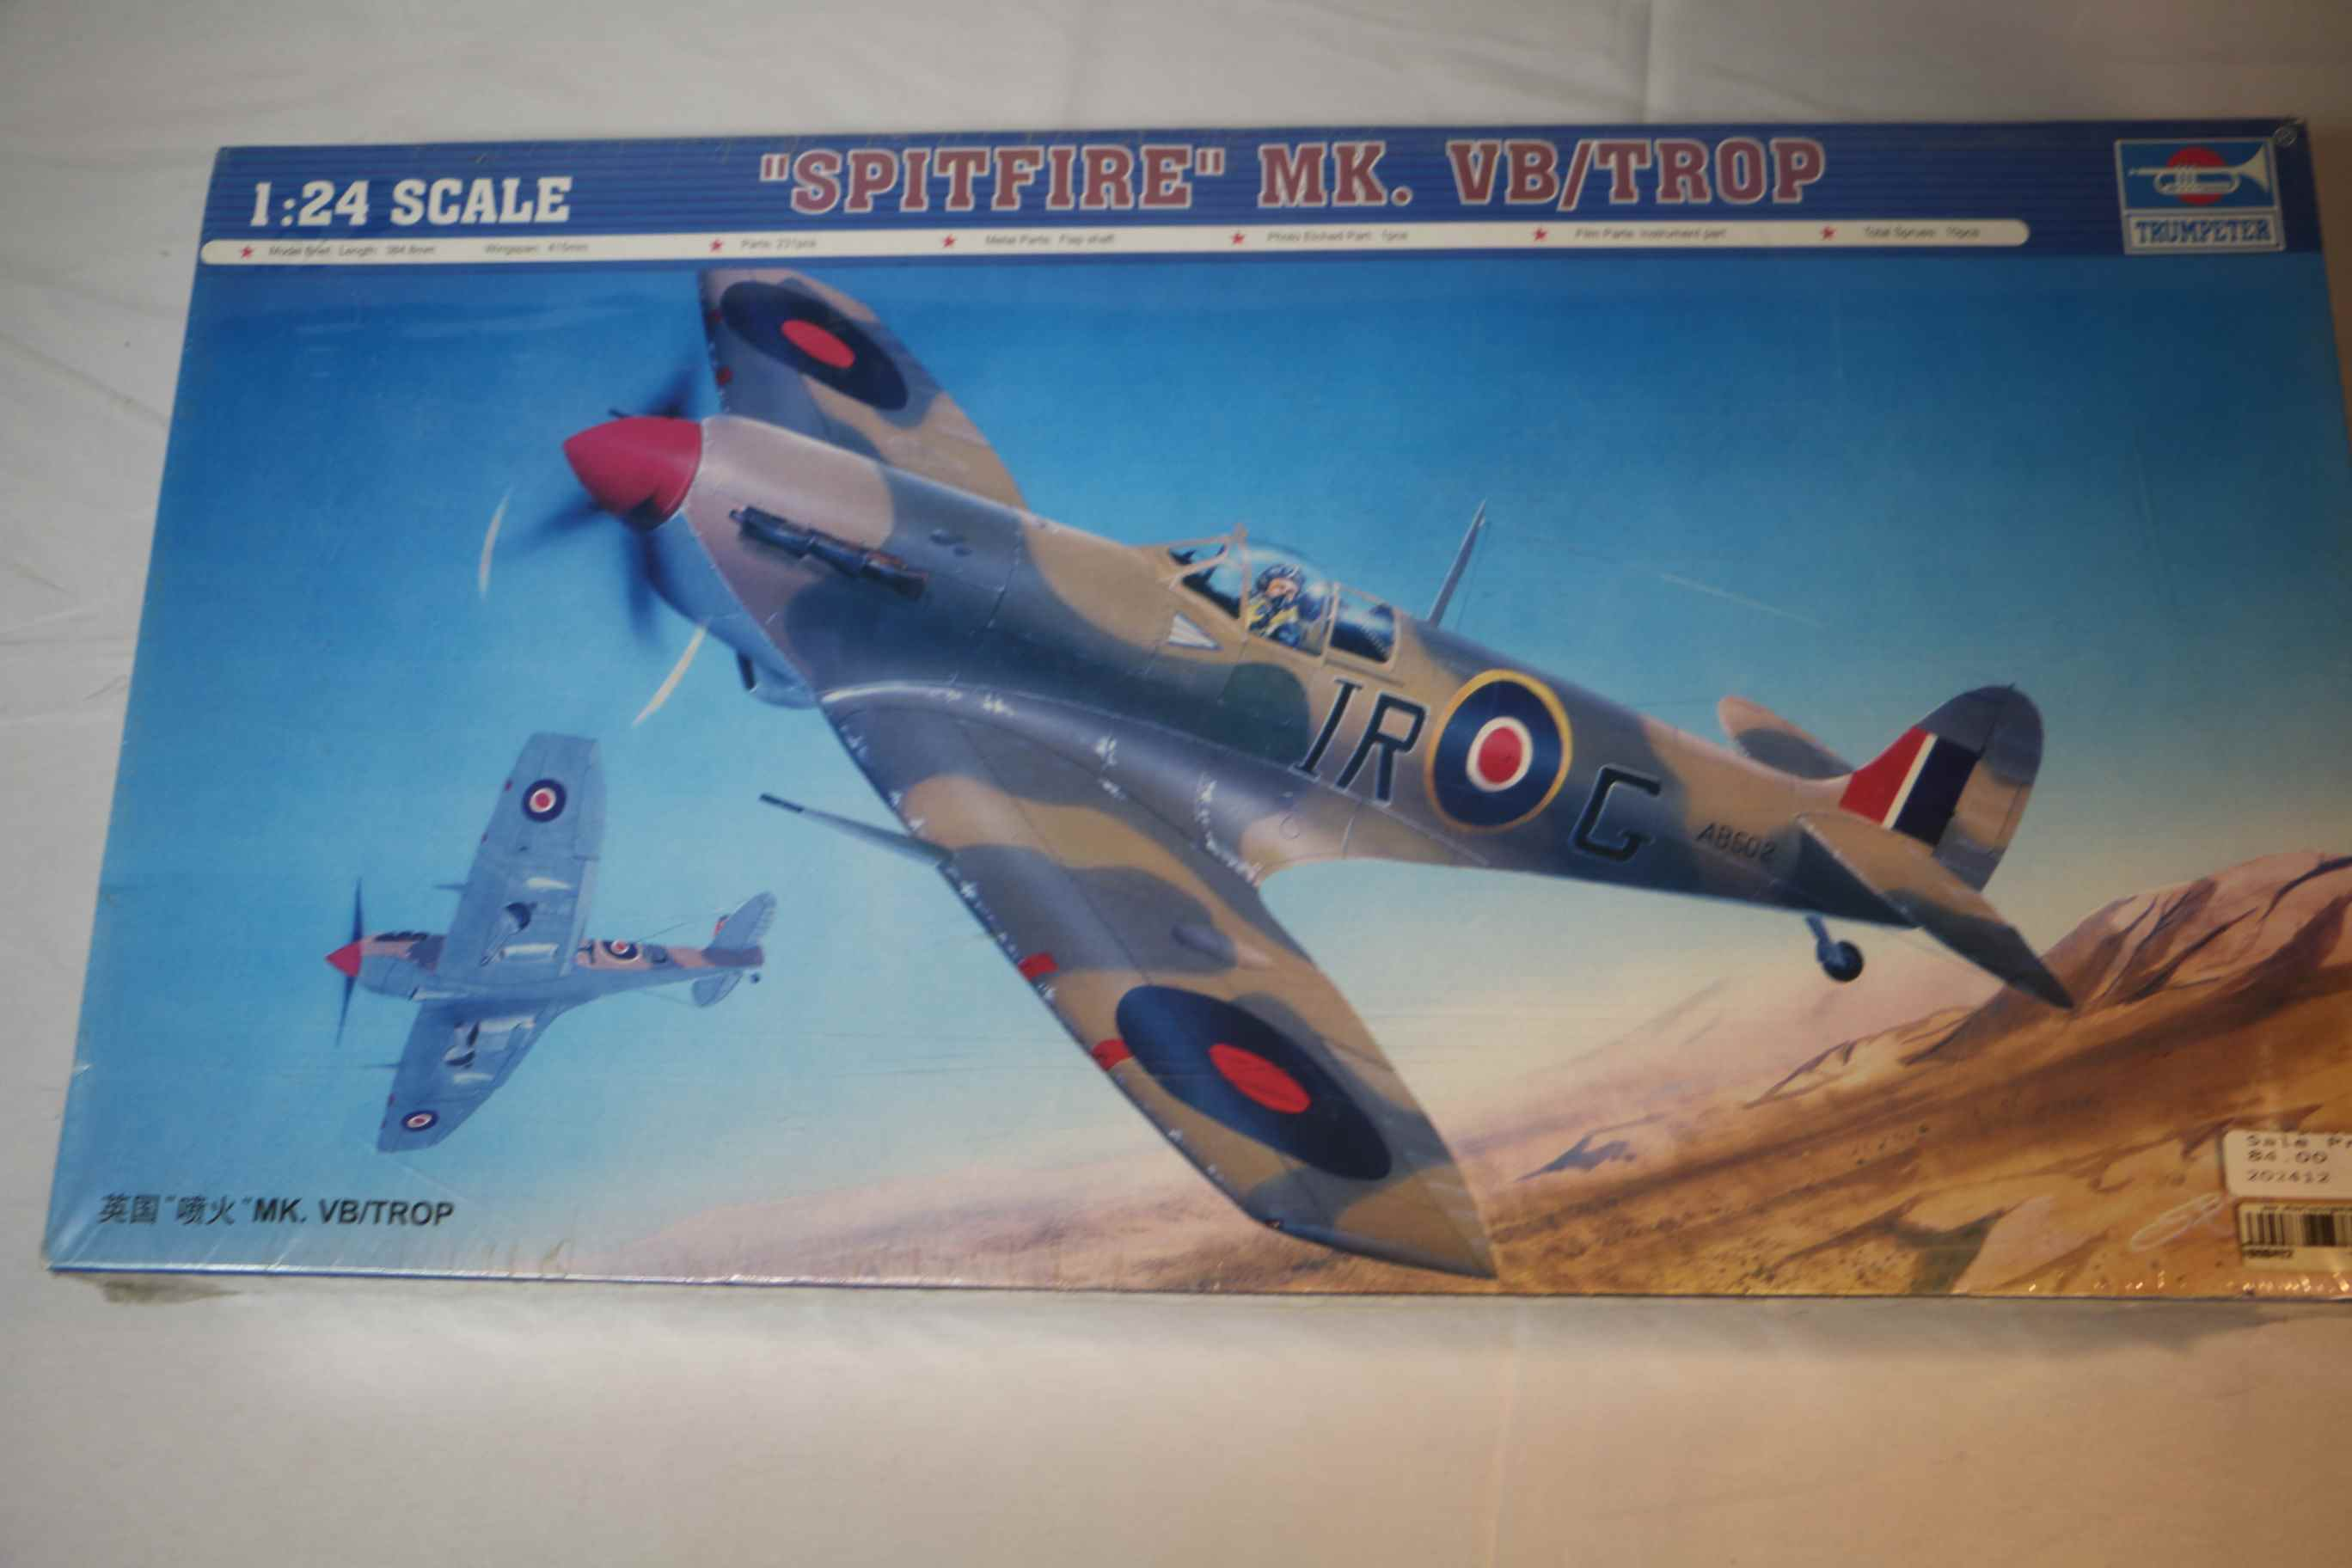 TRP02412 - Trumpeter 1/24 Spitfire Mk.VB Tropical